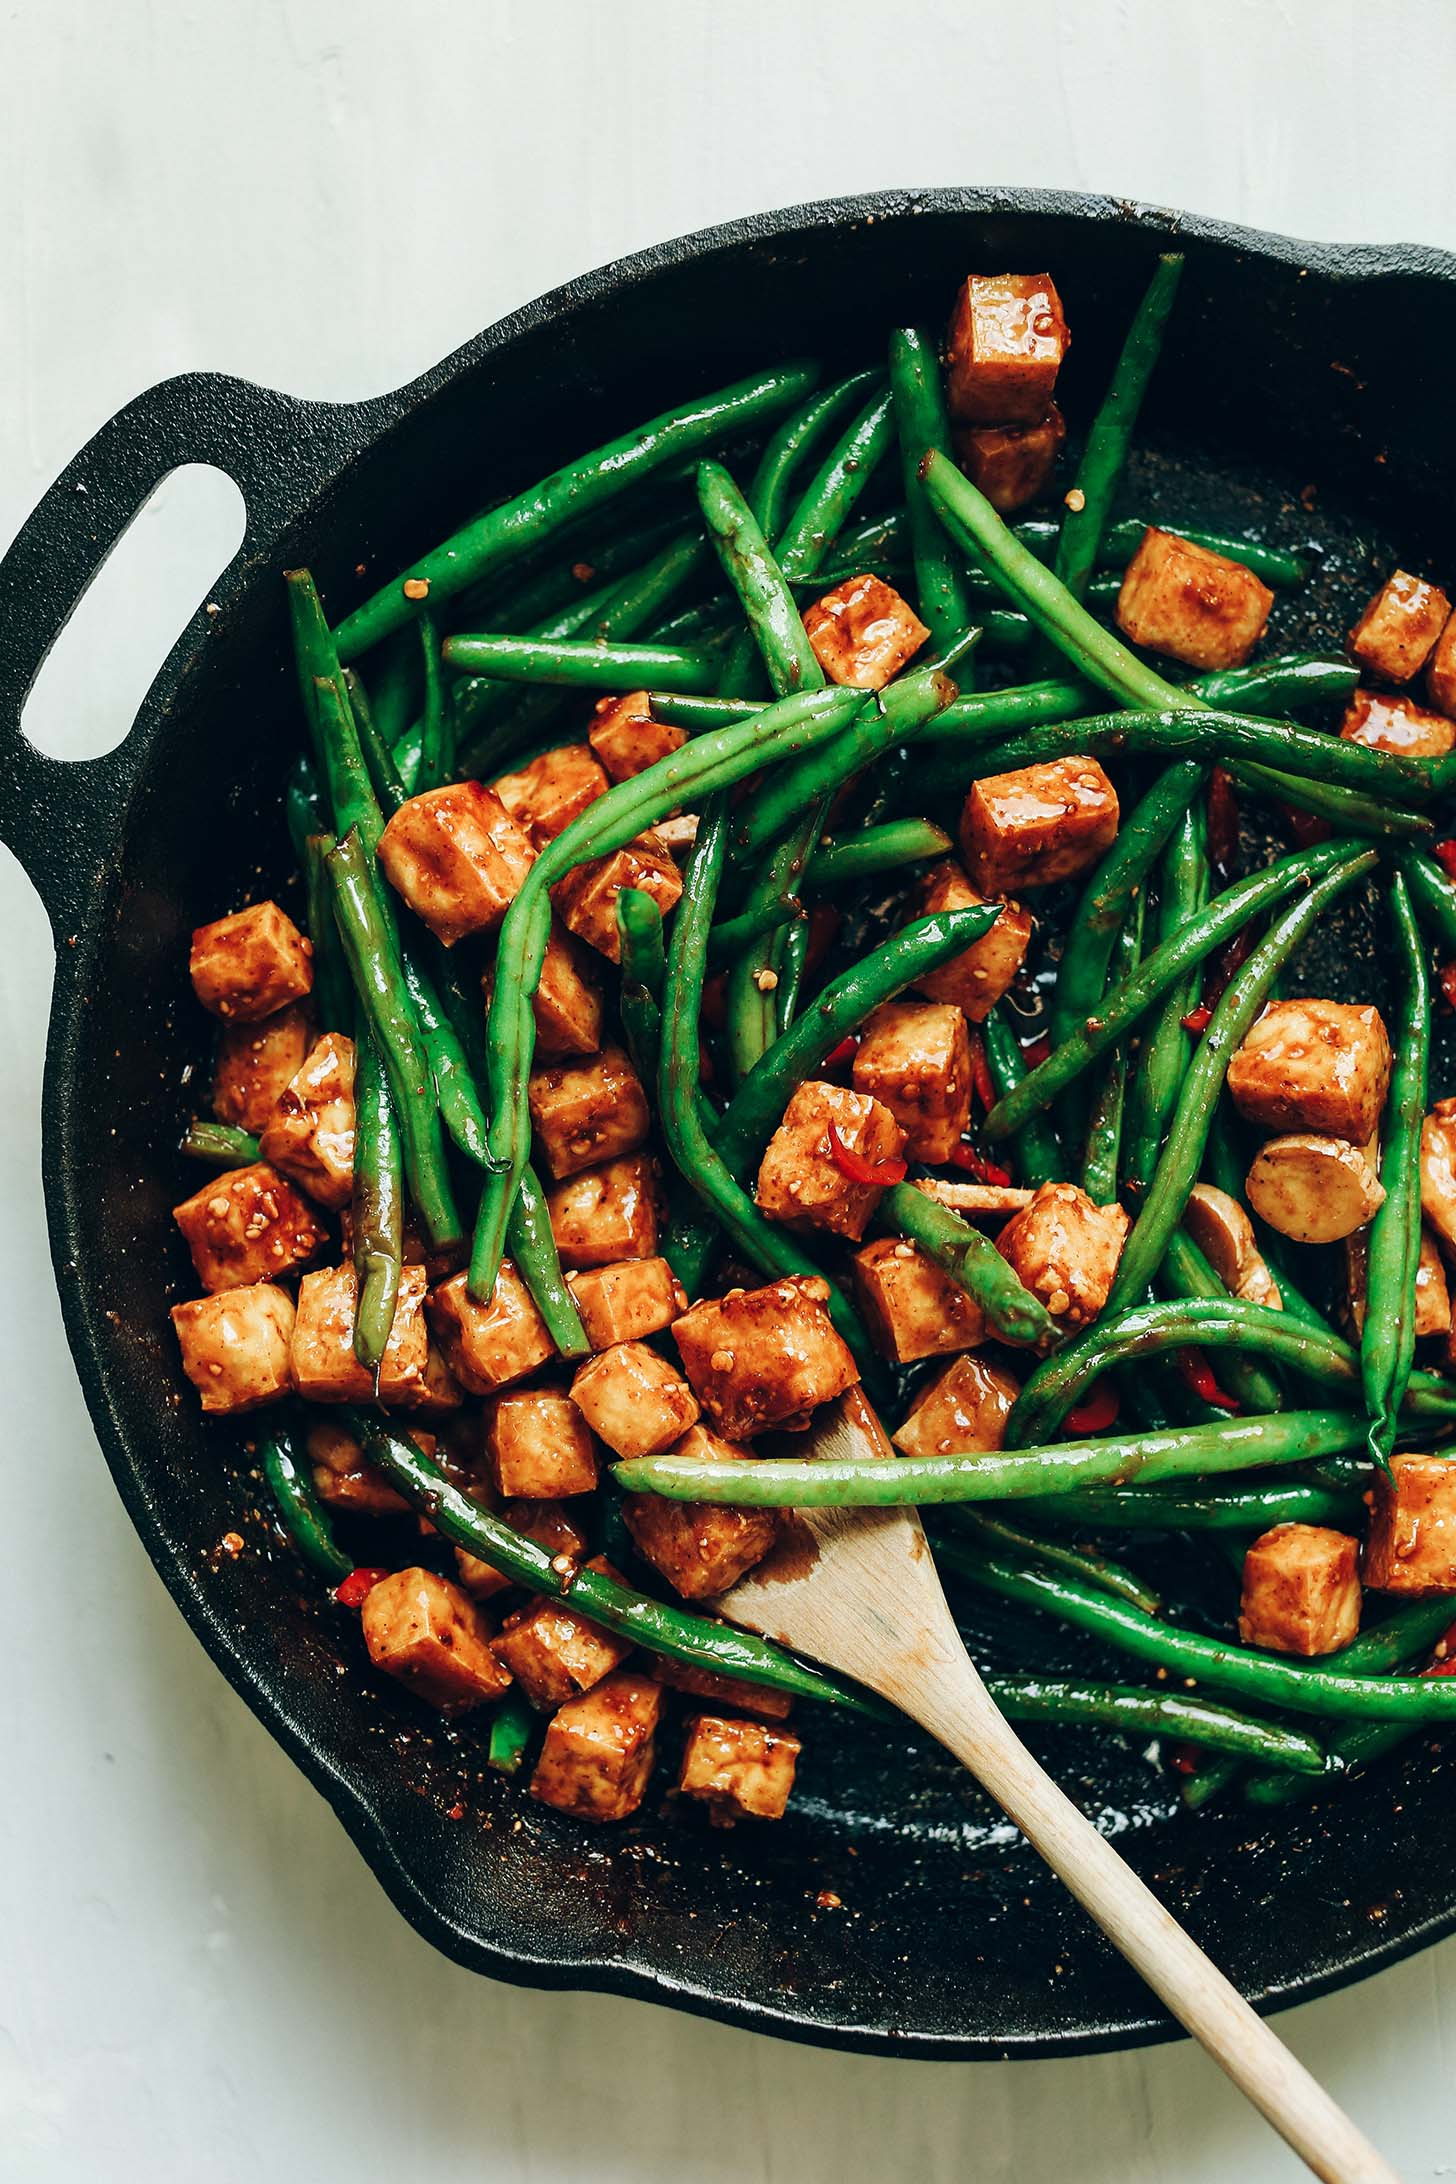 Almond Butter Tofu Stir-Fry! Healthy, 9 ingredients, fast, protein-rich! #vegan #glutenfree #plantbased #stirfry #tofu #healthy #minimalistbaker